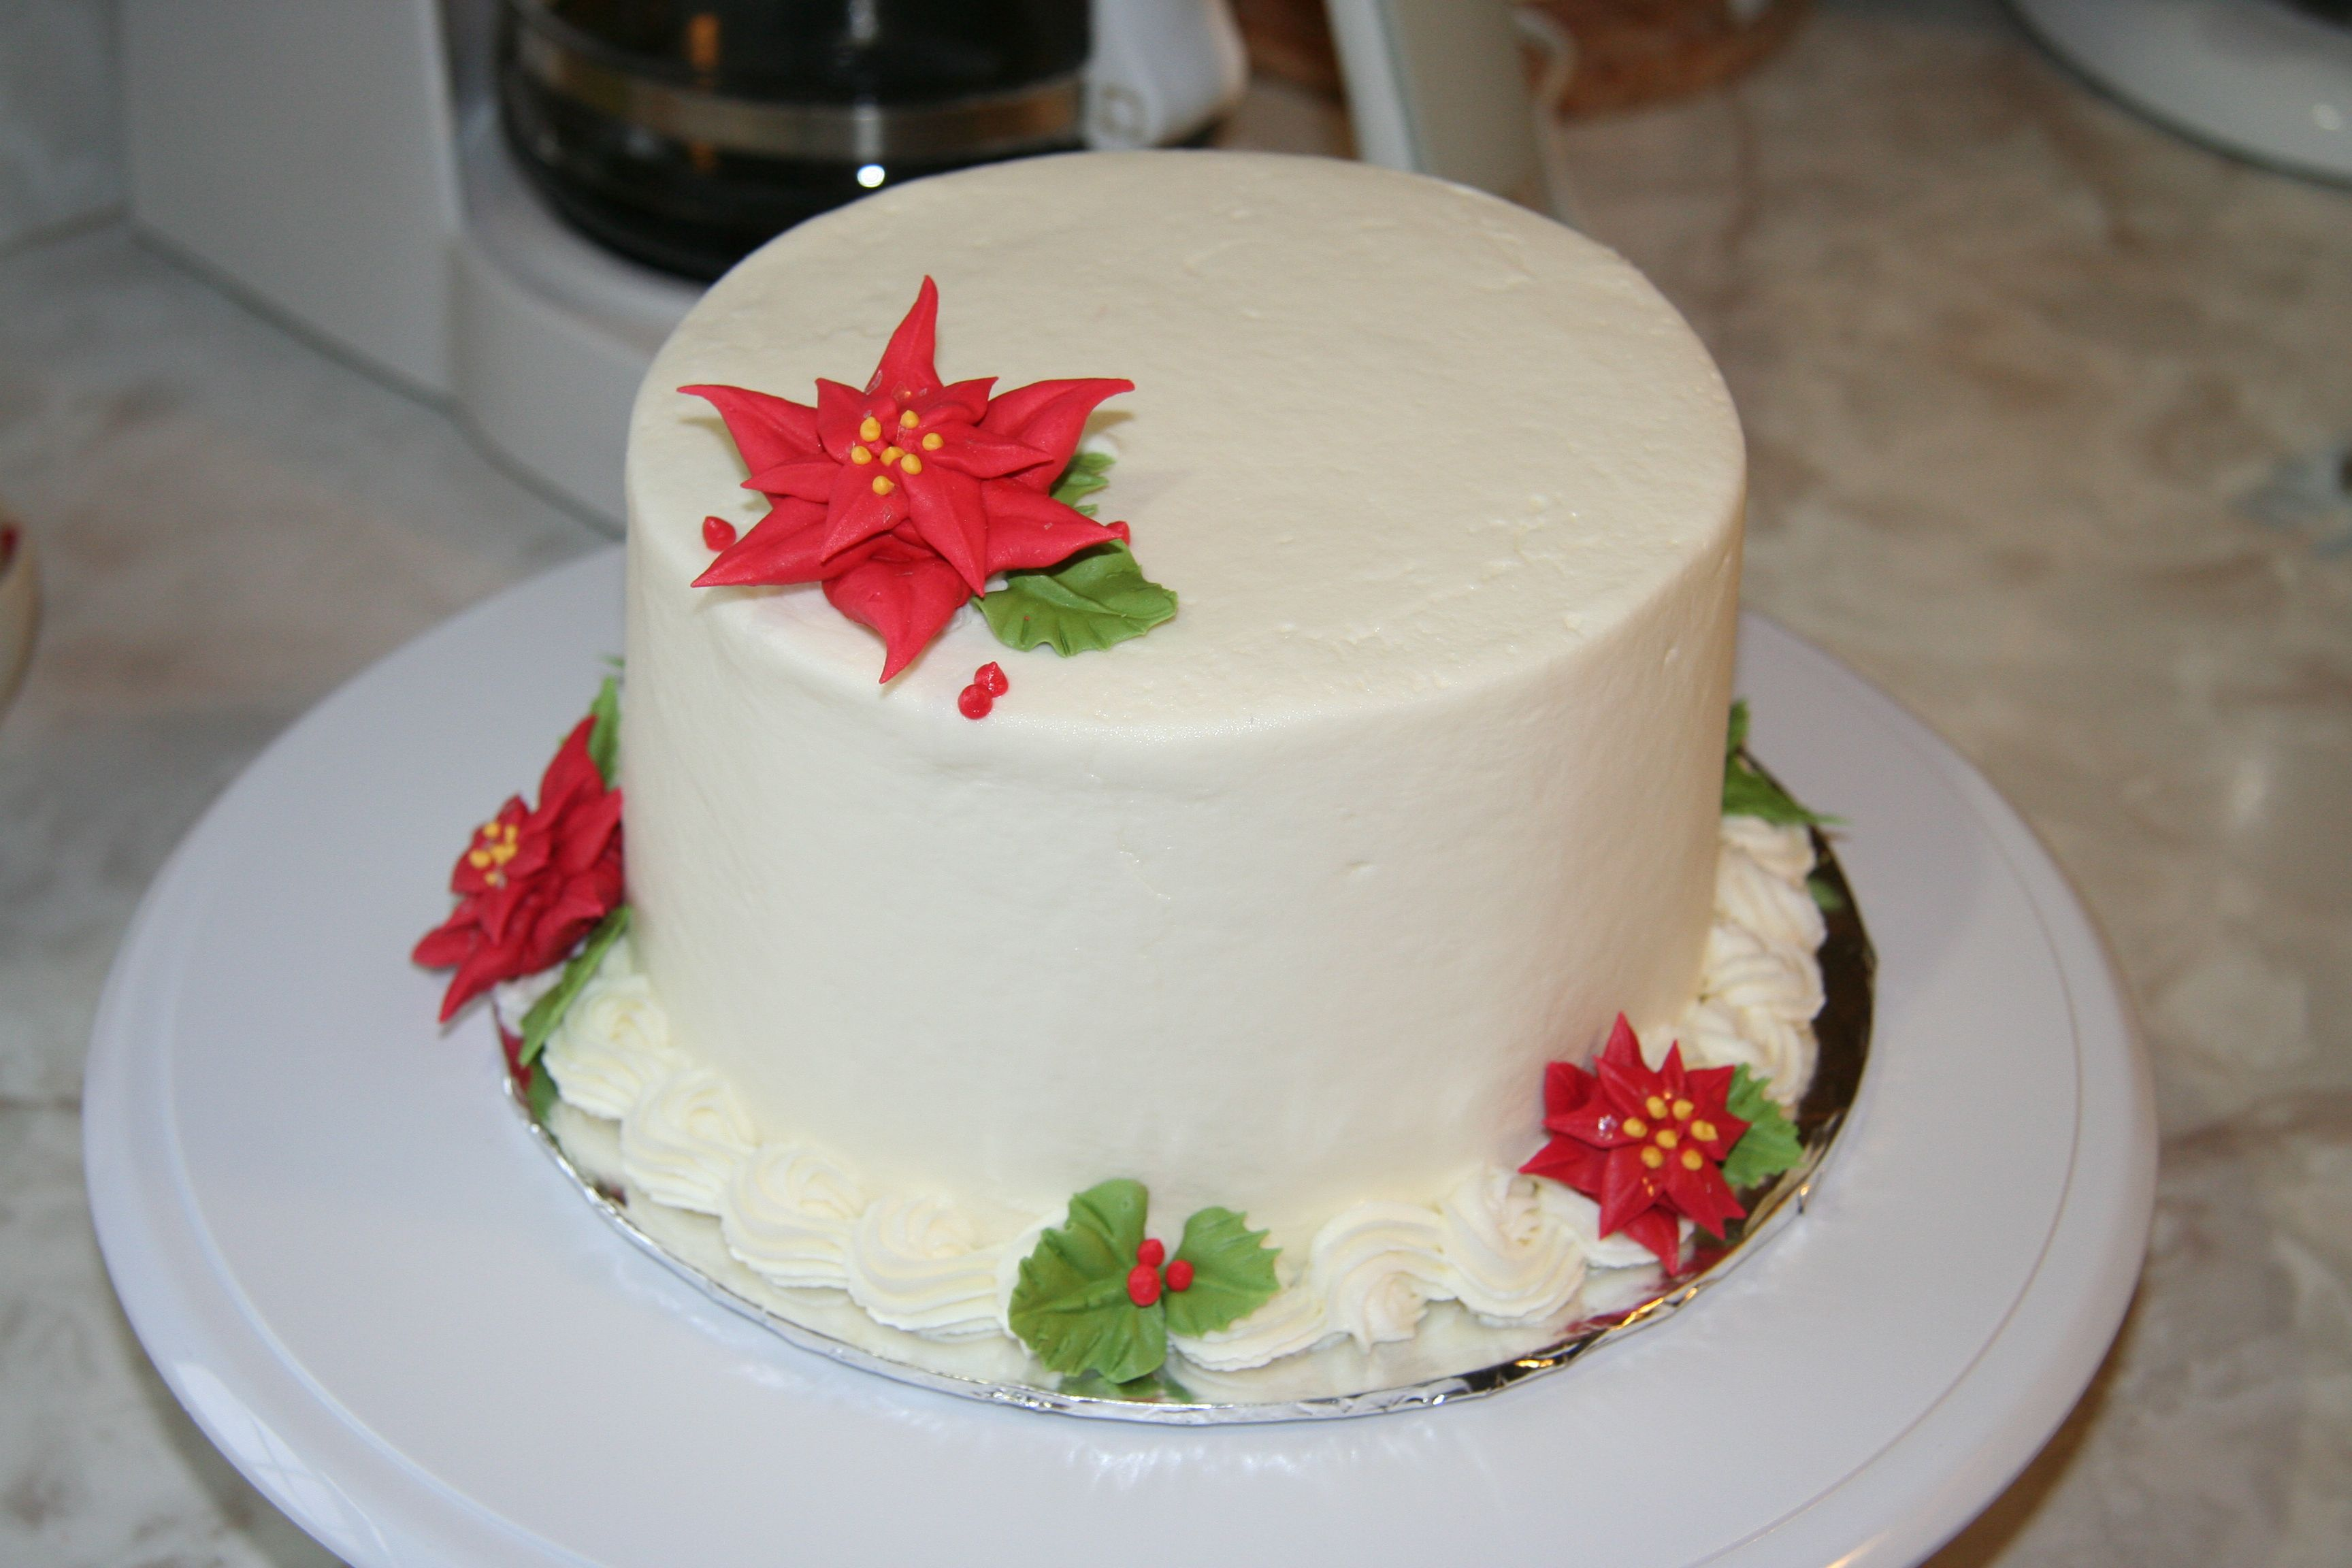 A customer ordered a WASC cake w/ almond flavored buttercream icing ...